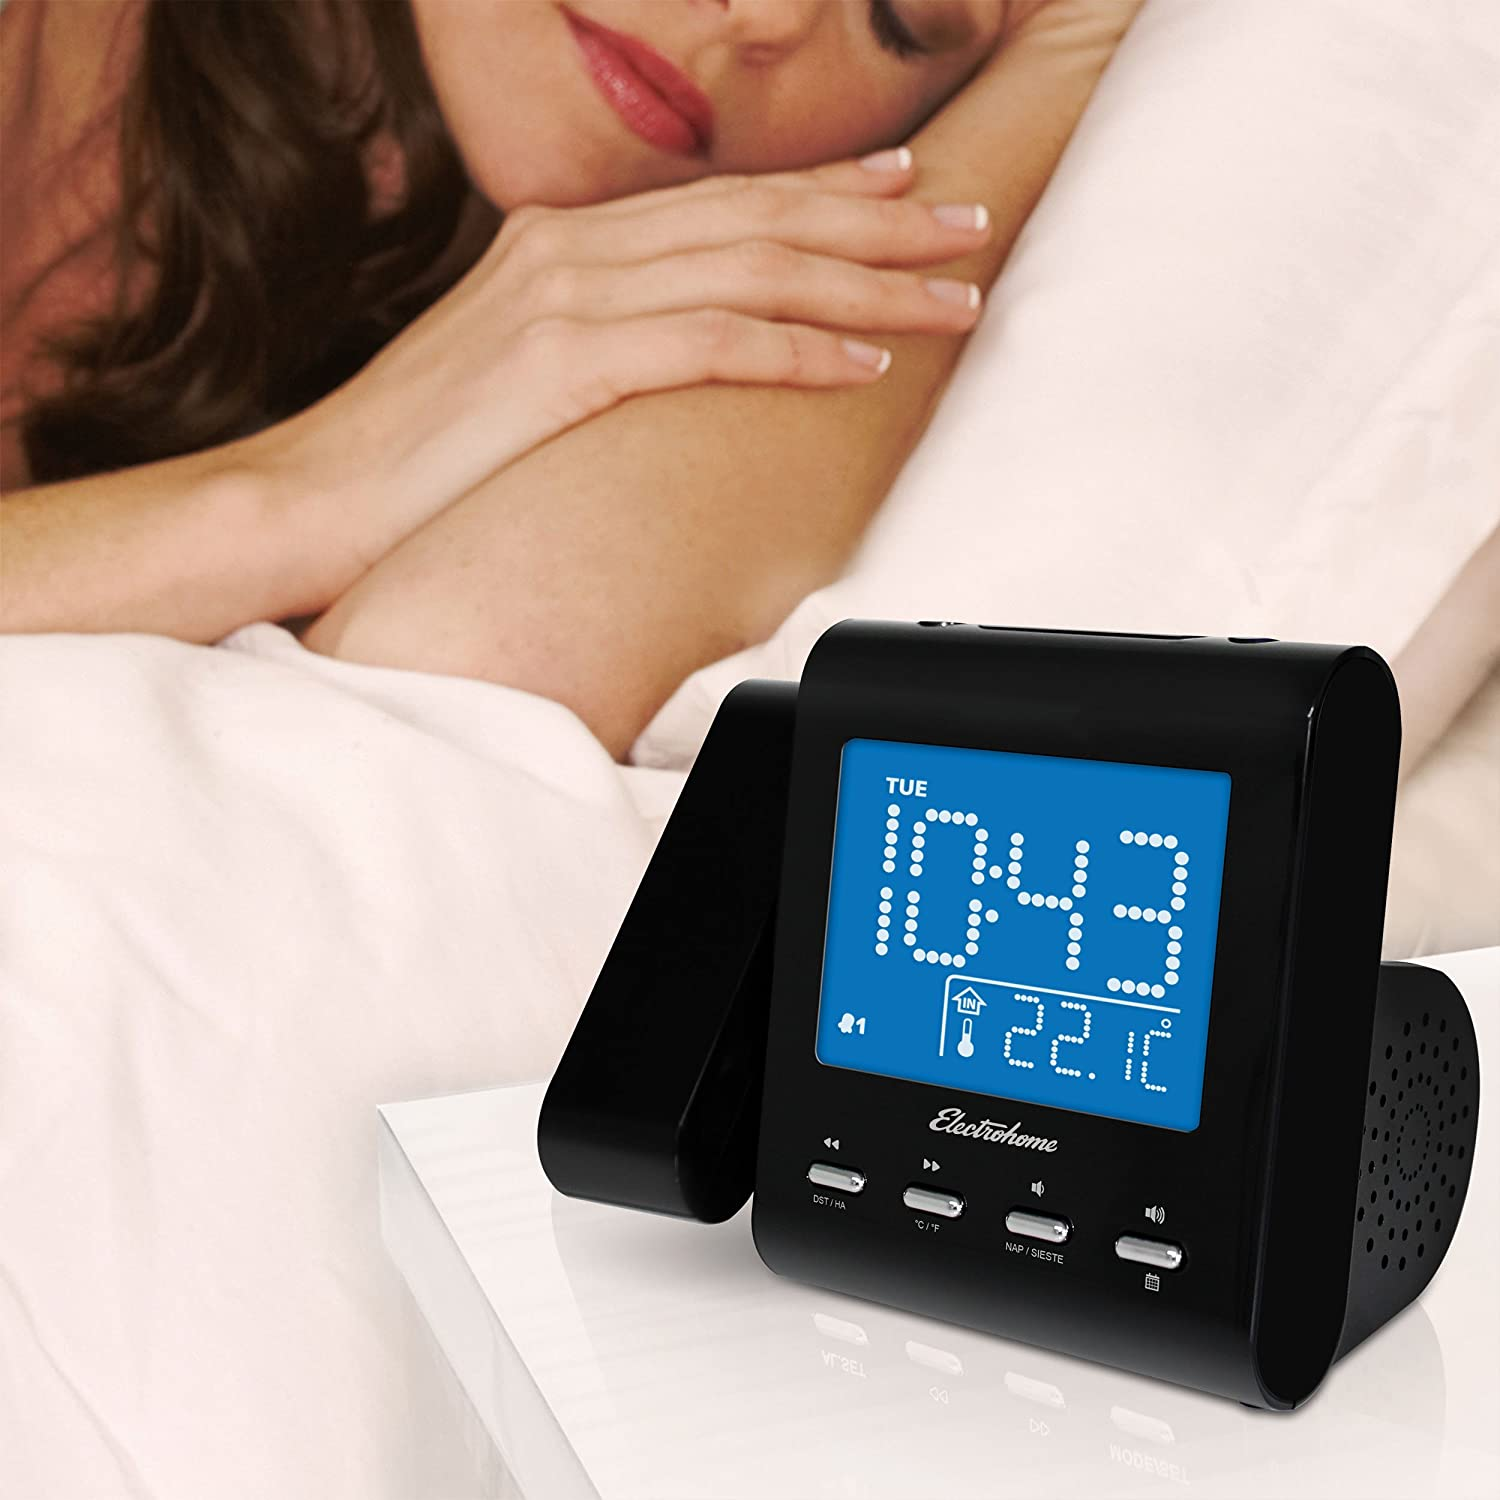 alarm-clock-goes-off